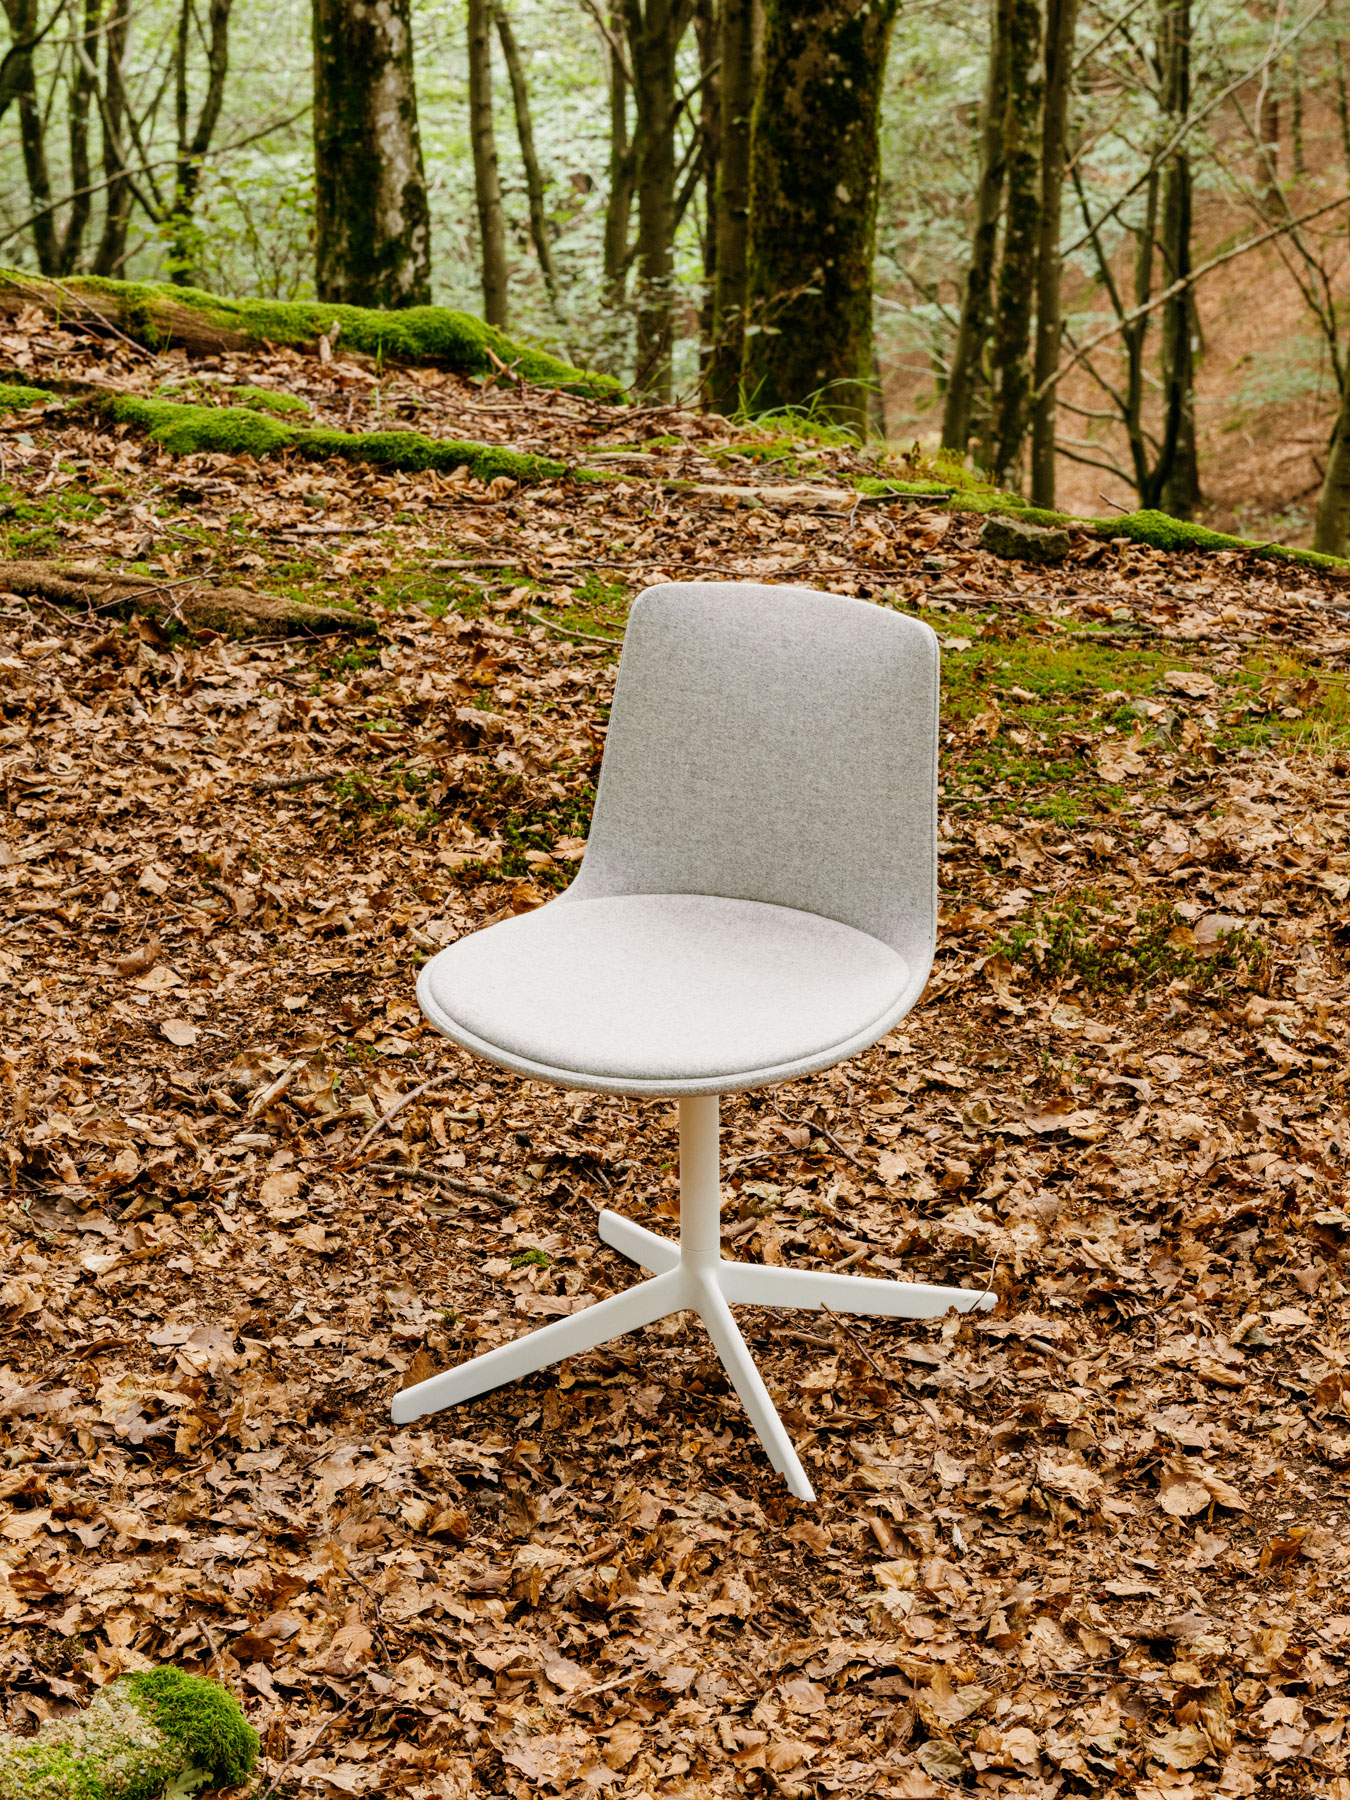 Lottus confident chair